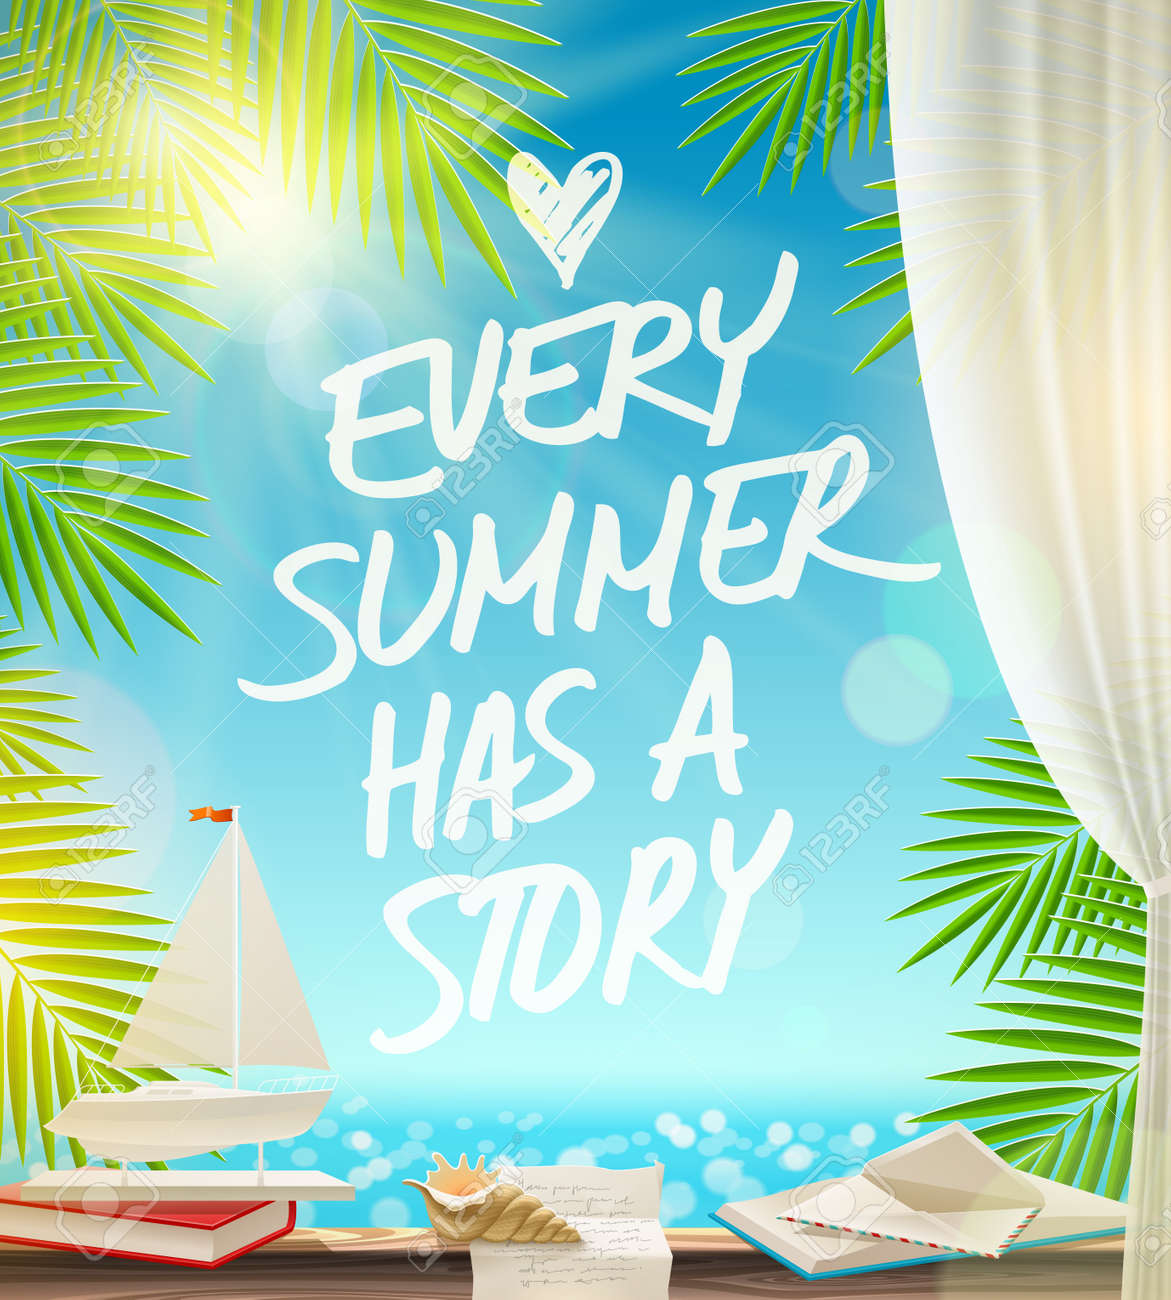 Every Summer Has A Story Summer Vacation Vector Design With Hand Drawn Quote  Against A Seascape